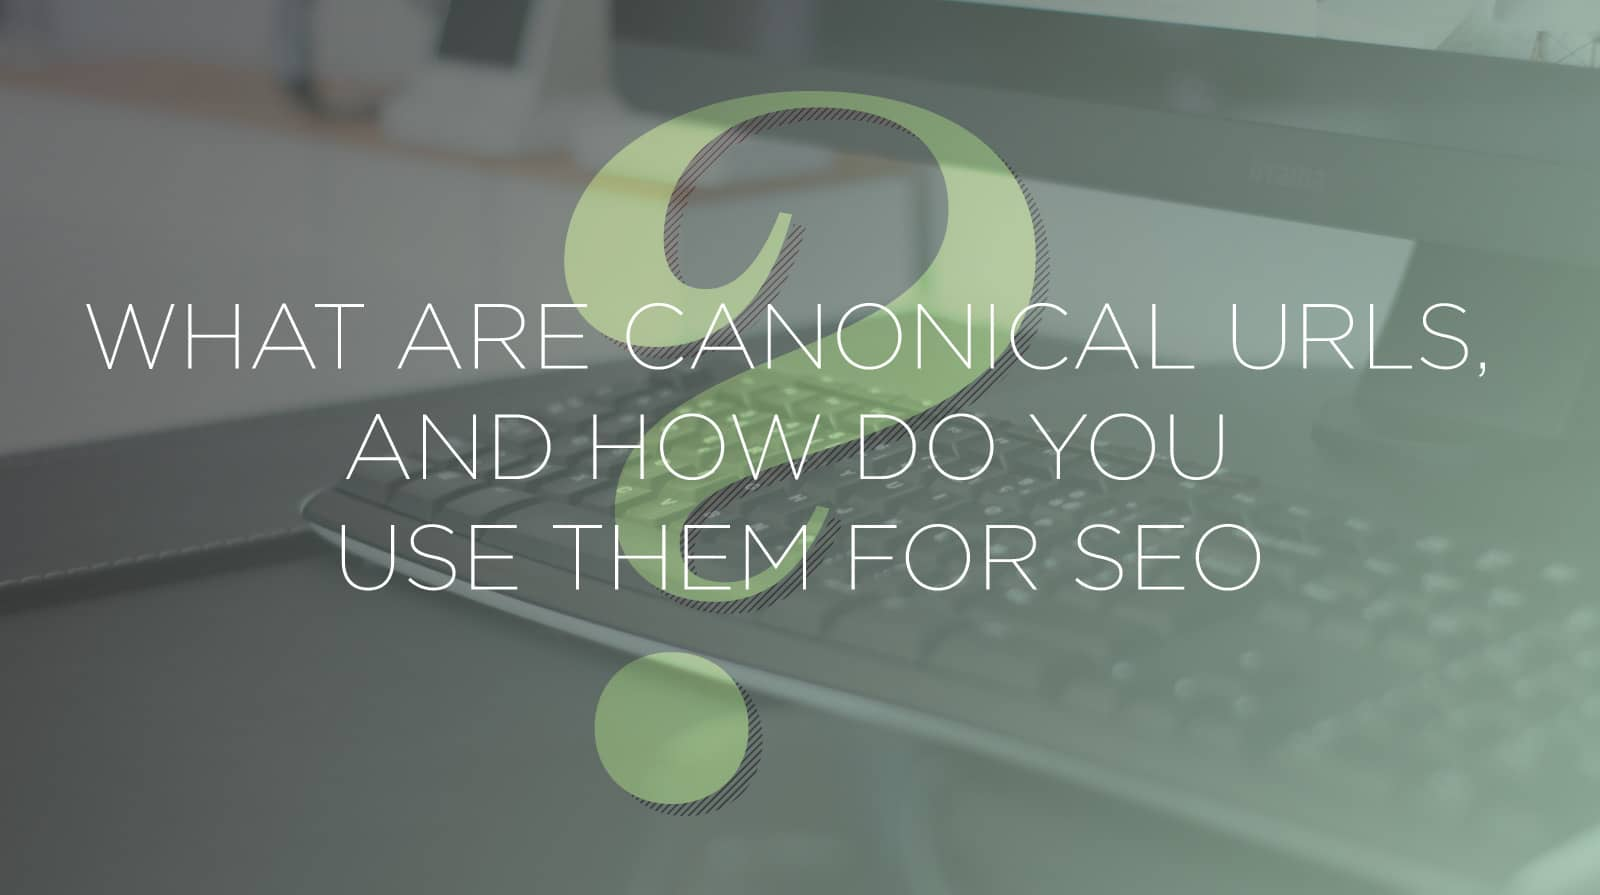 What Are Canonical URLs, and How Do You Use Them for SEO